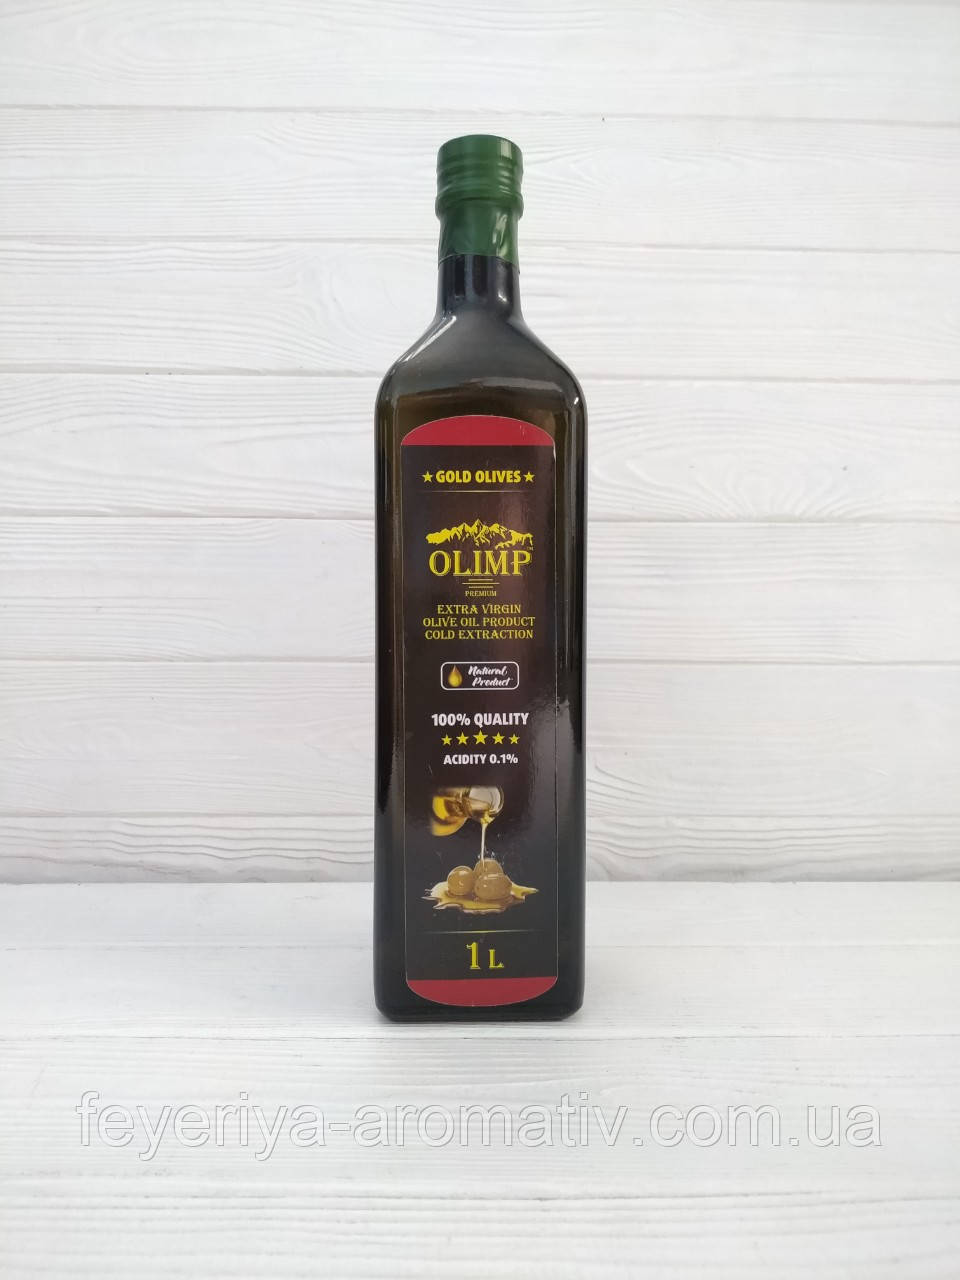 Оливковое масло Olimp Extra Virgin Olive Oil Gold Extraction, 1л (Греция)